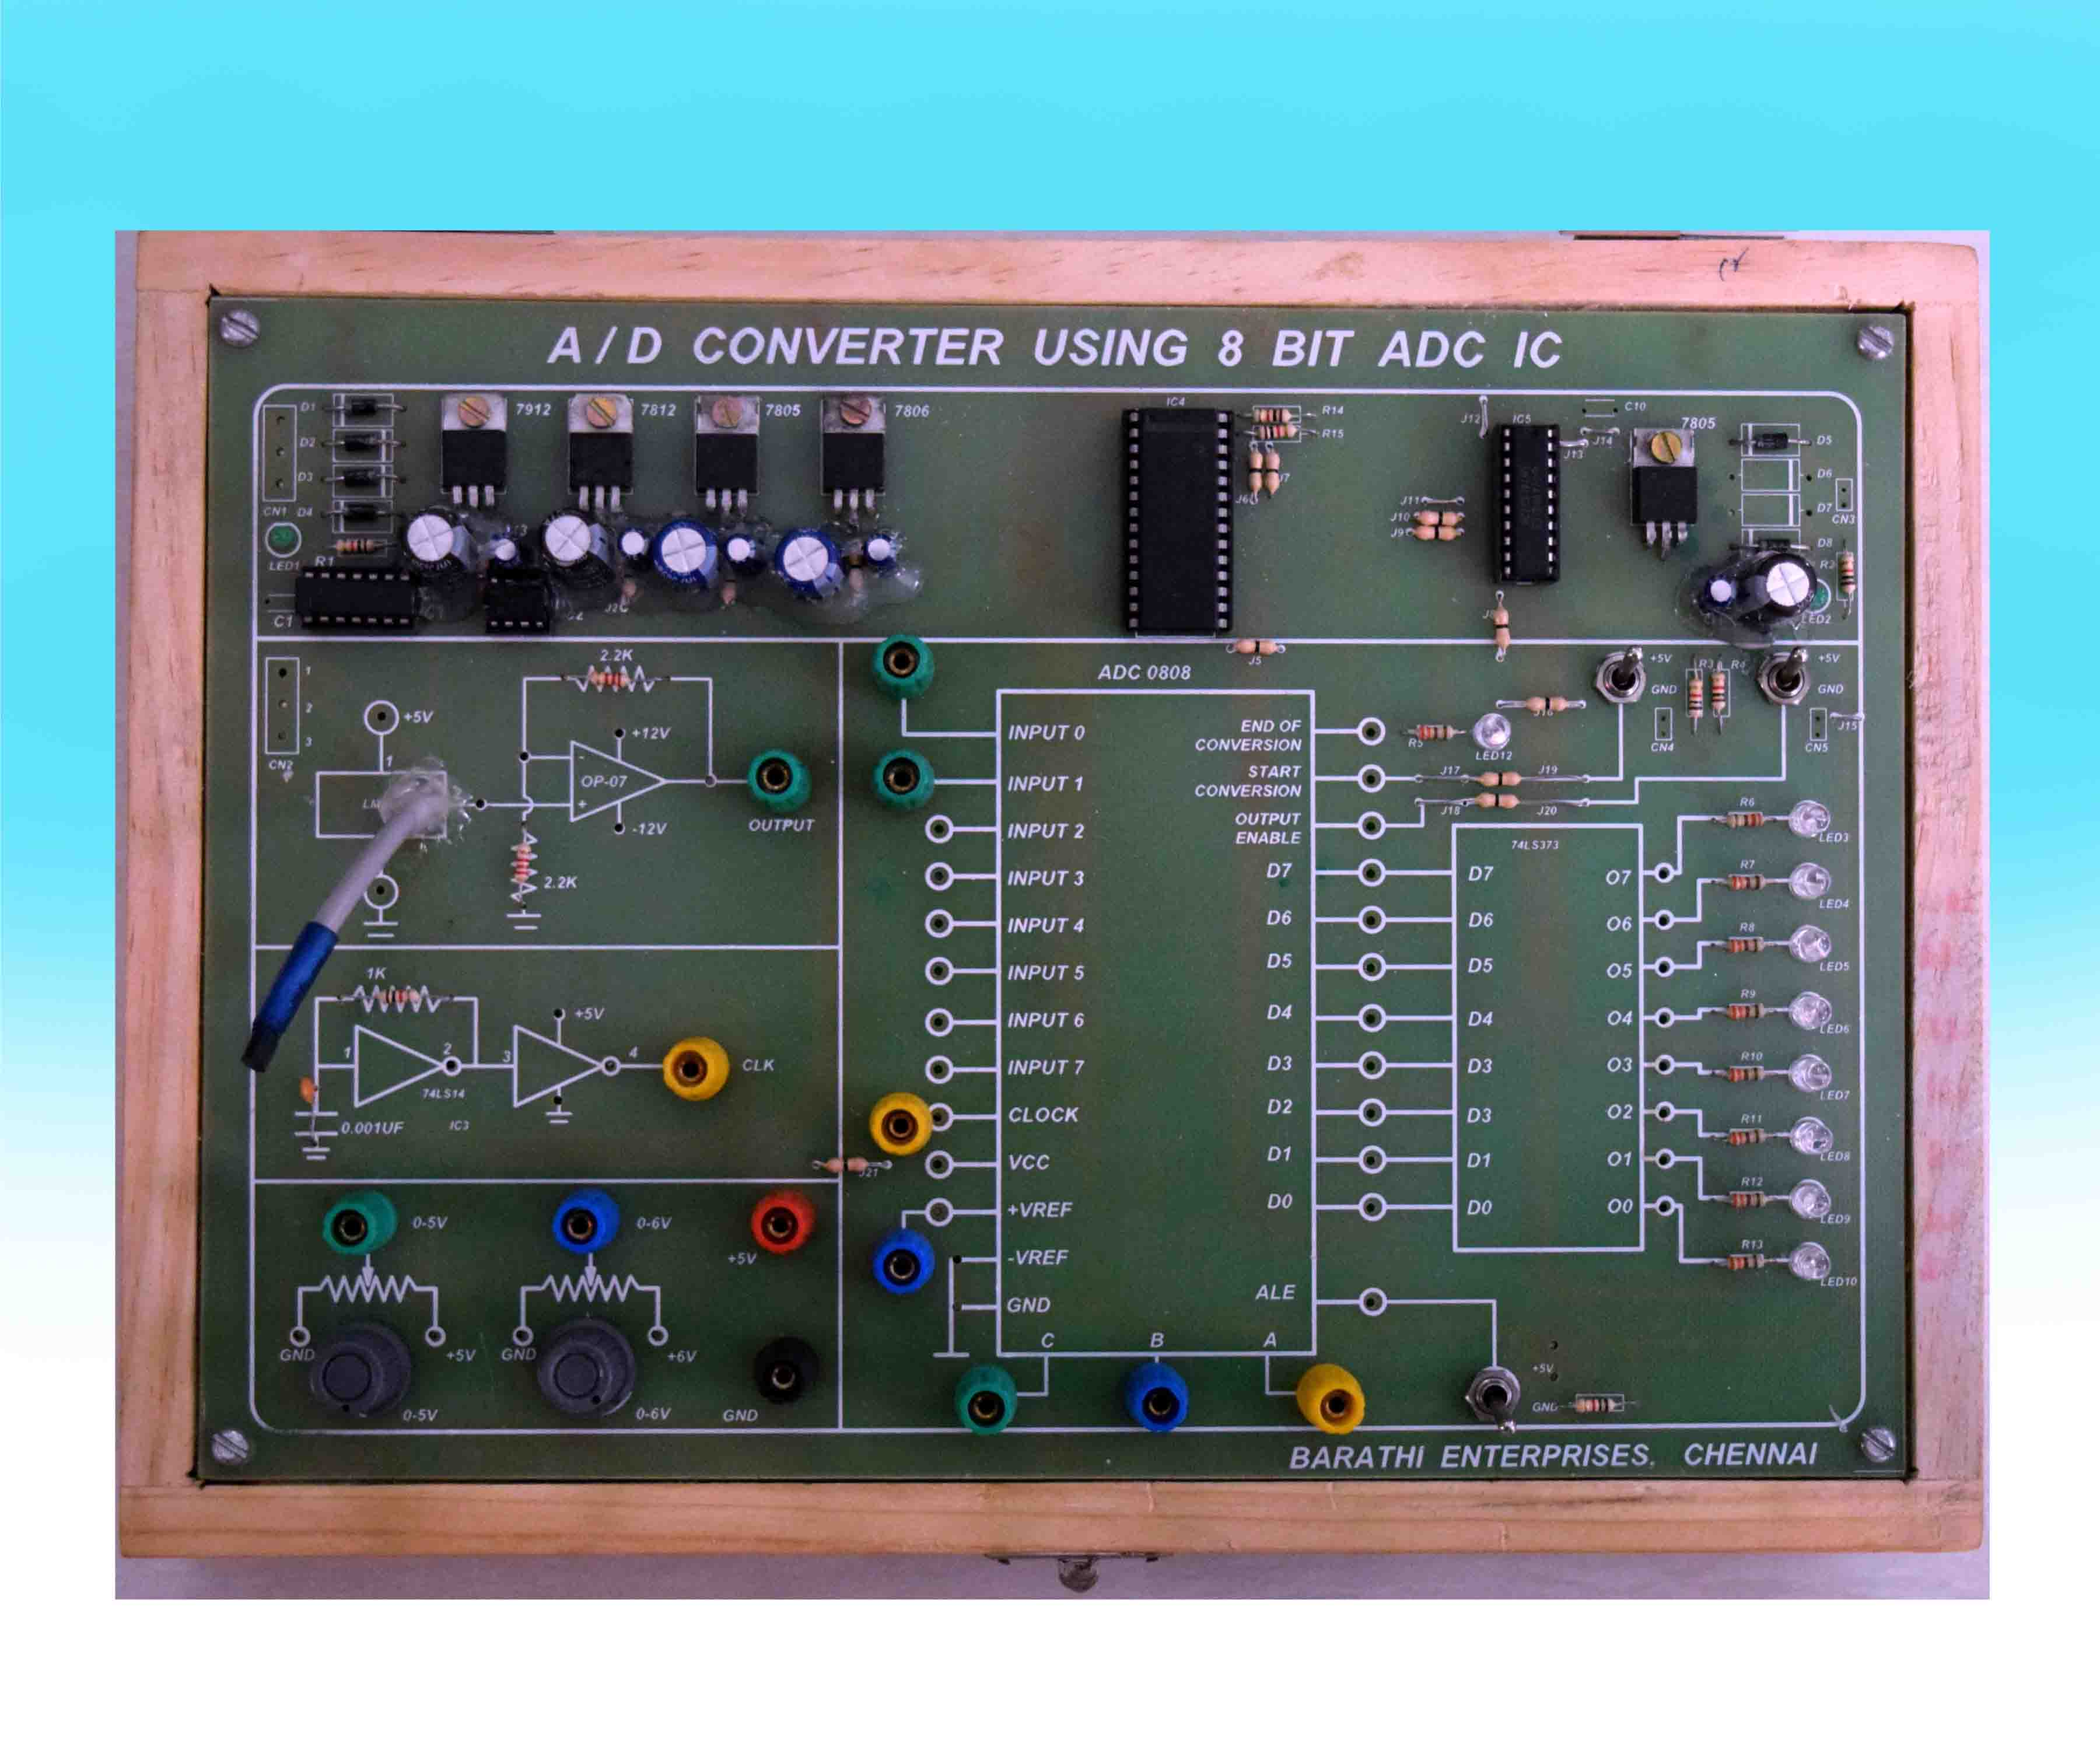 Barathi Enterprises Bcd To Binary Converter Electronics Telecommunication Circuit Objective